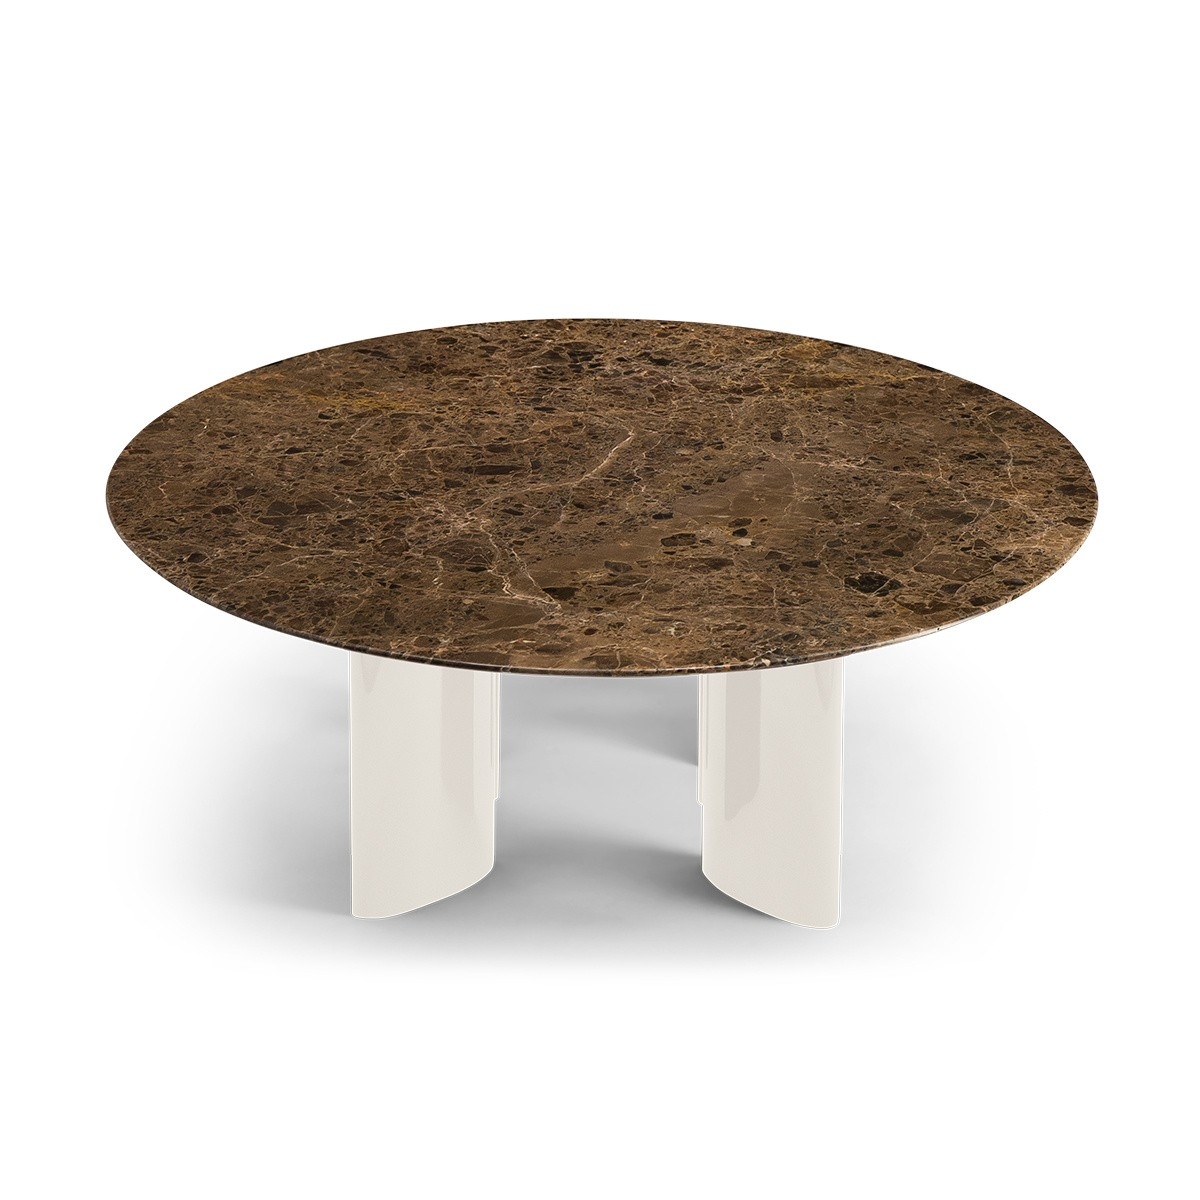 Carlotta coffee table, brown marble top and cream white lacquered legs